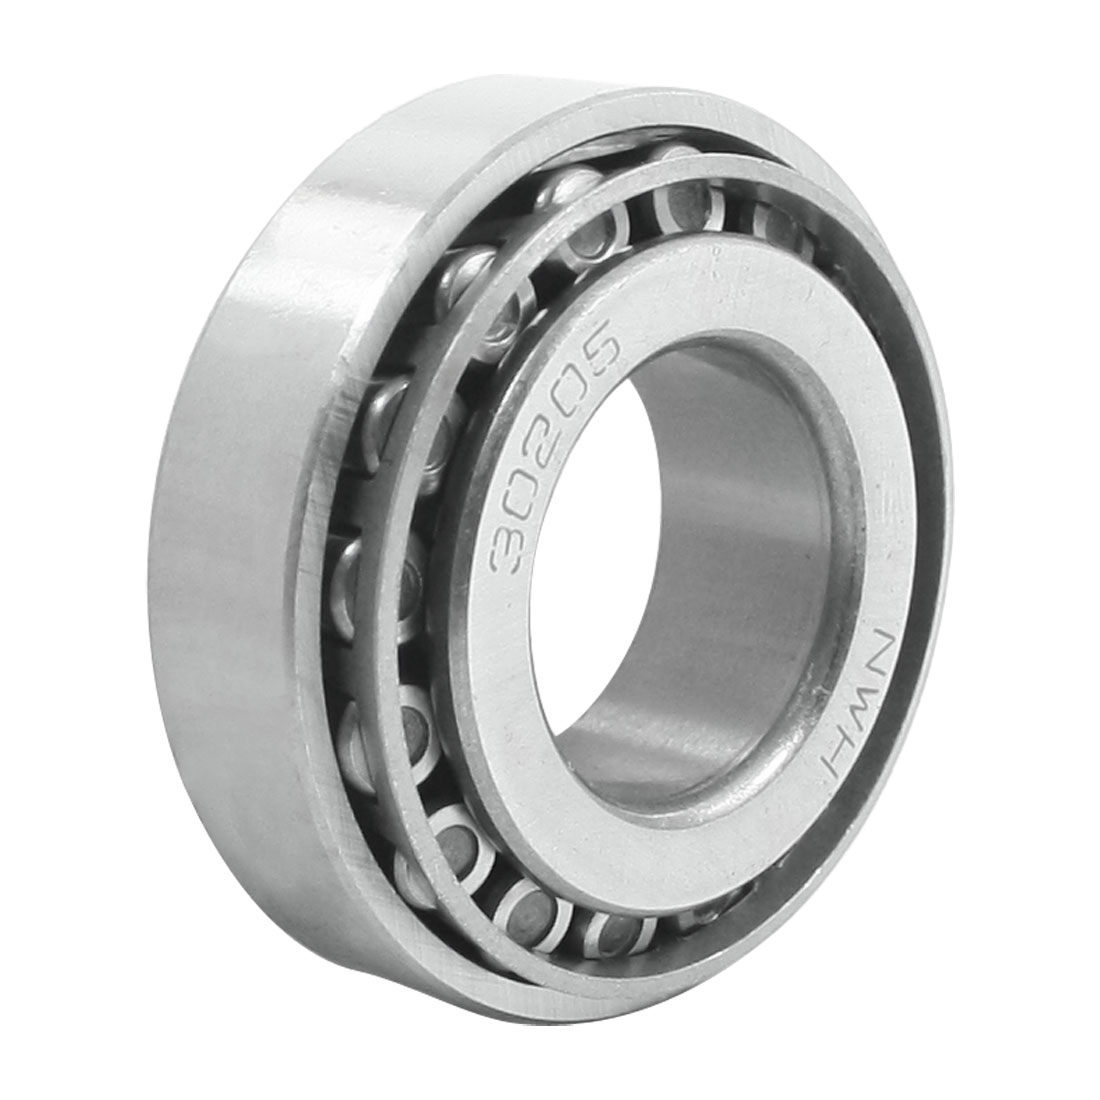 25mm Bore Dia 52mm OD 16.5mm Thickness Tapered Roller Bearing 30205